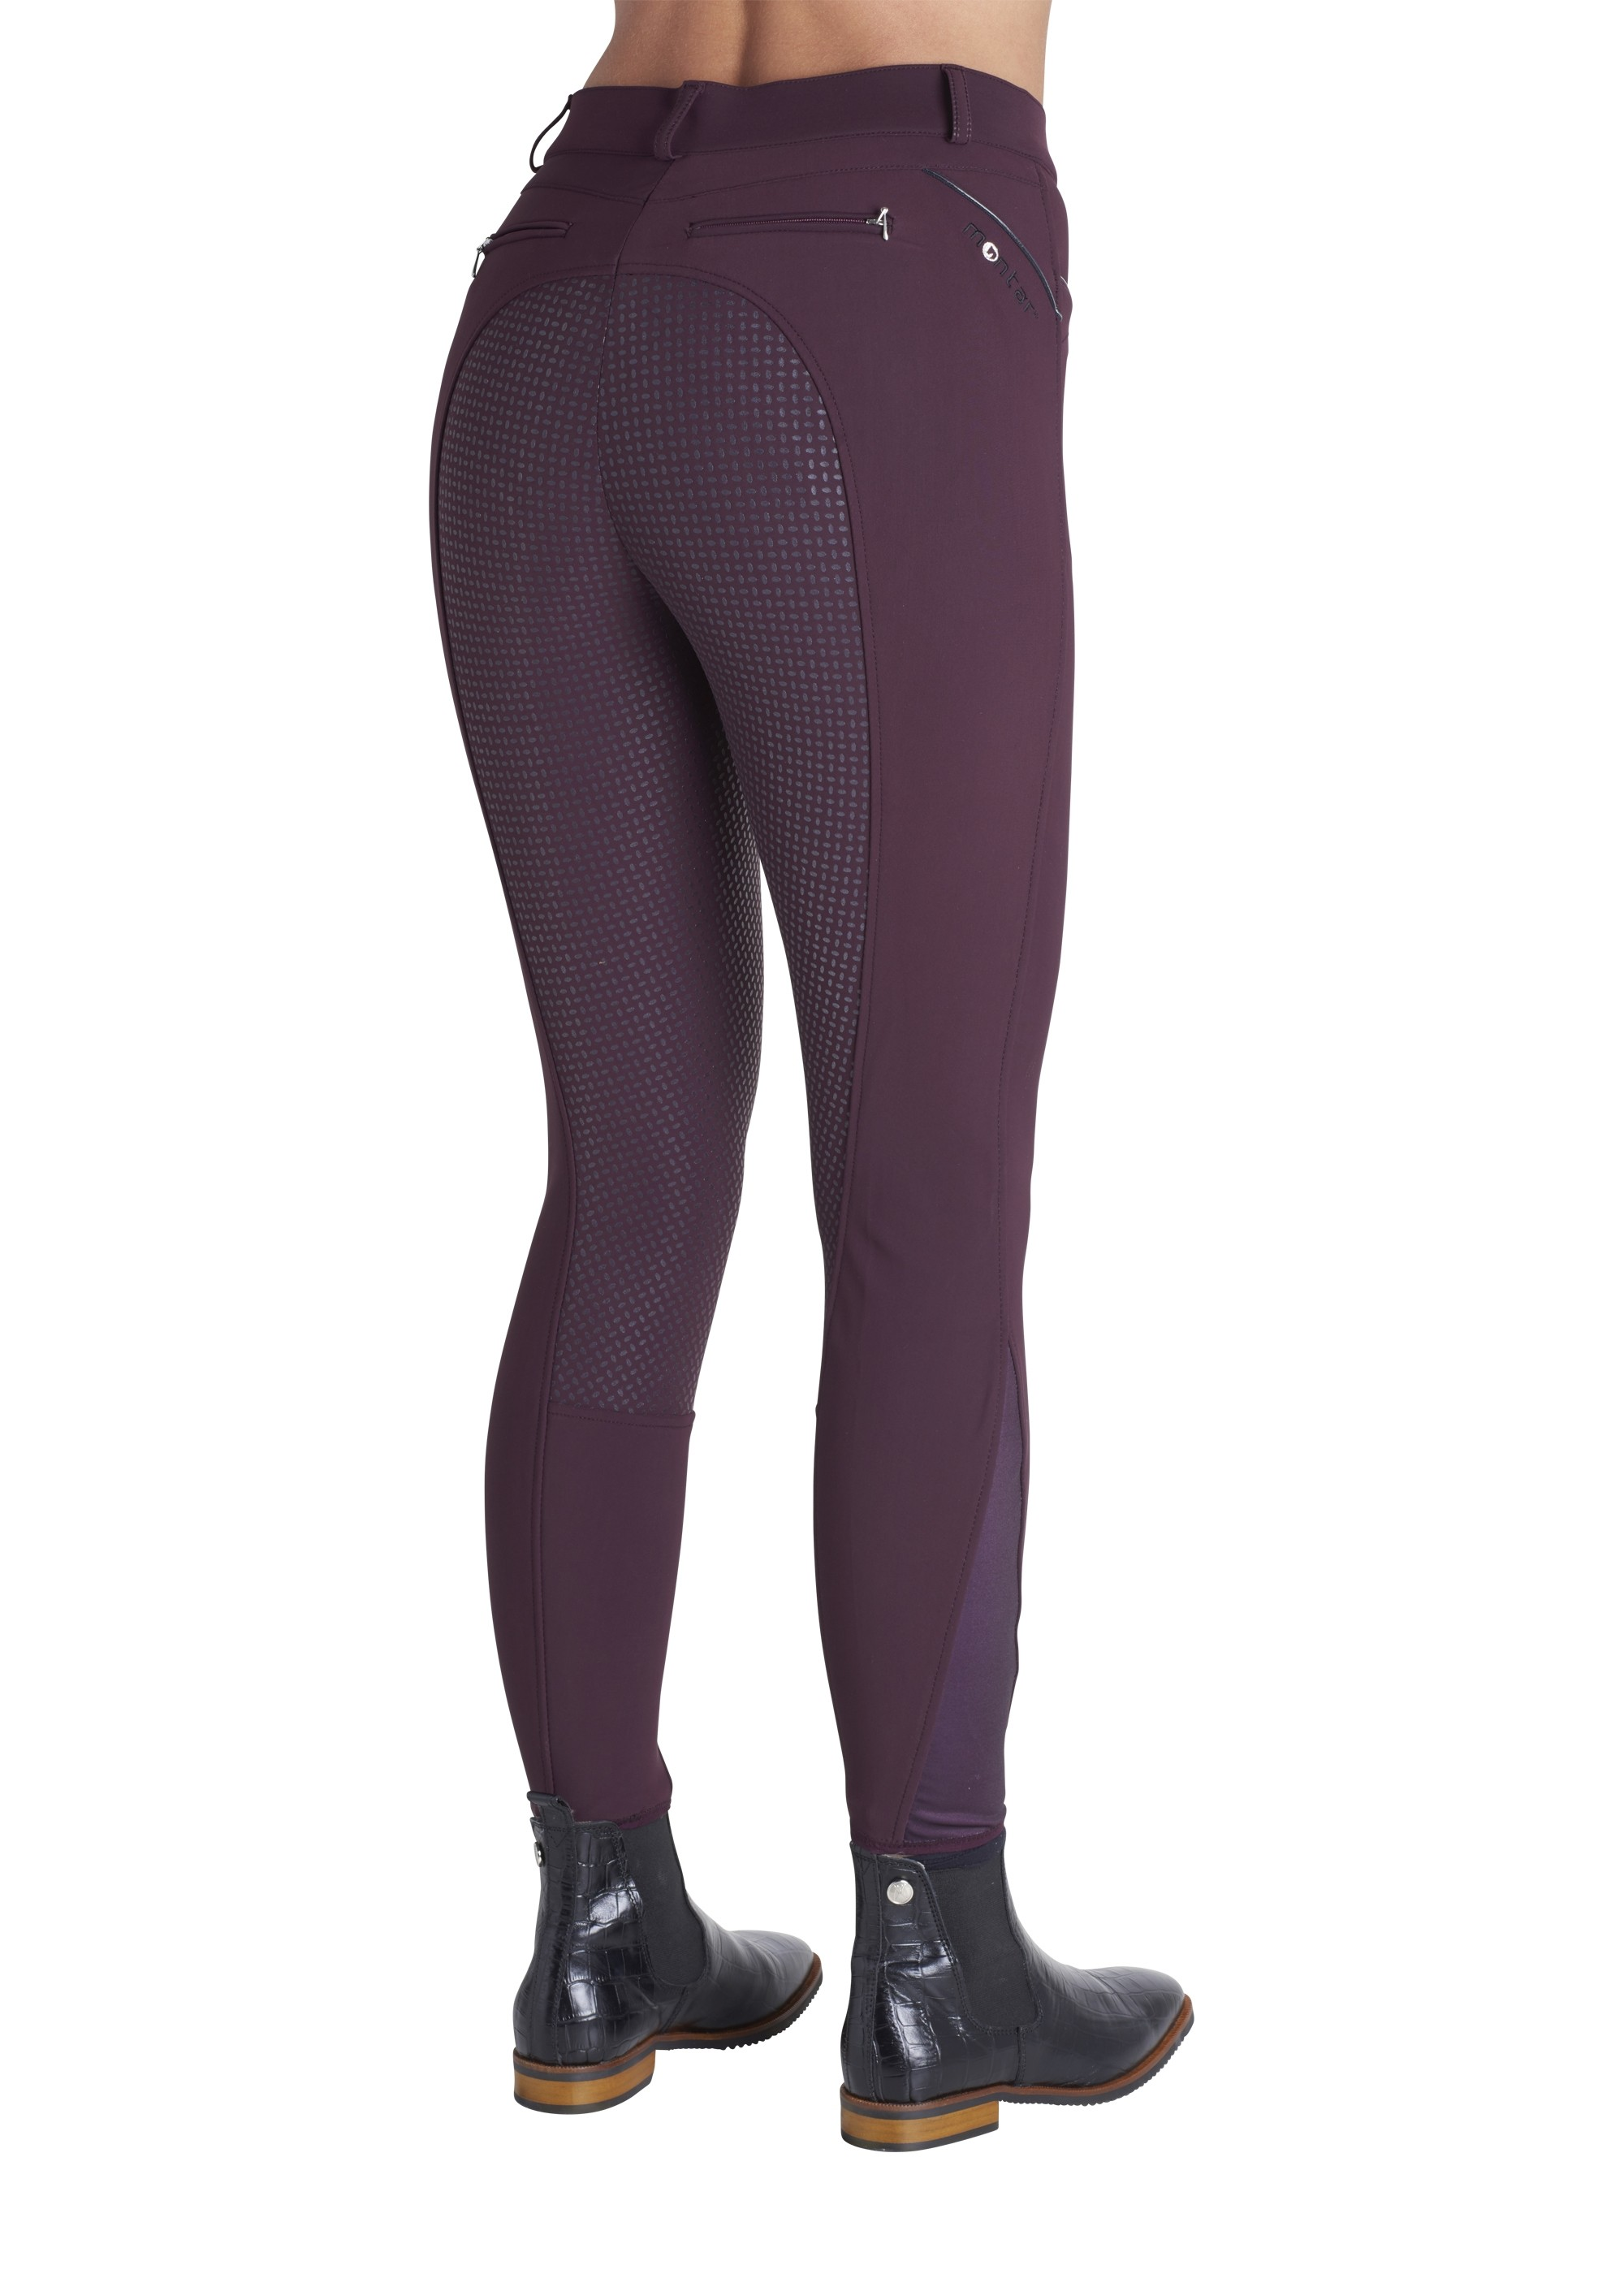 Montar Nancy Soft Tech Fullseat Silicone Breeches  - Thomas Irving's equestrian and accessories store  Montar Nancy Soft Tech Fullseat Silicone Breeches